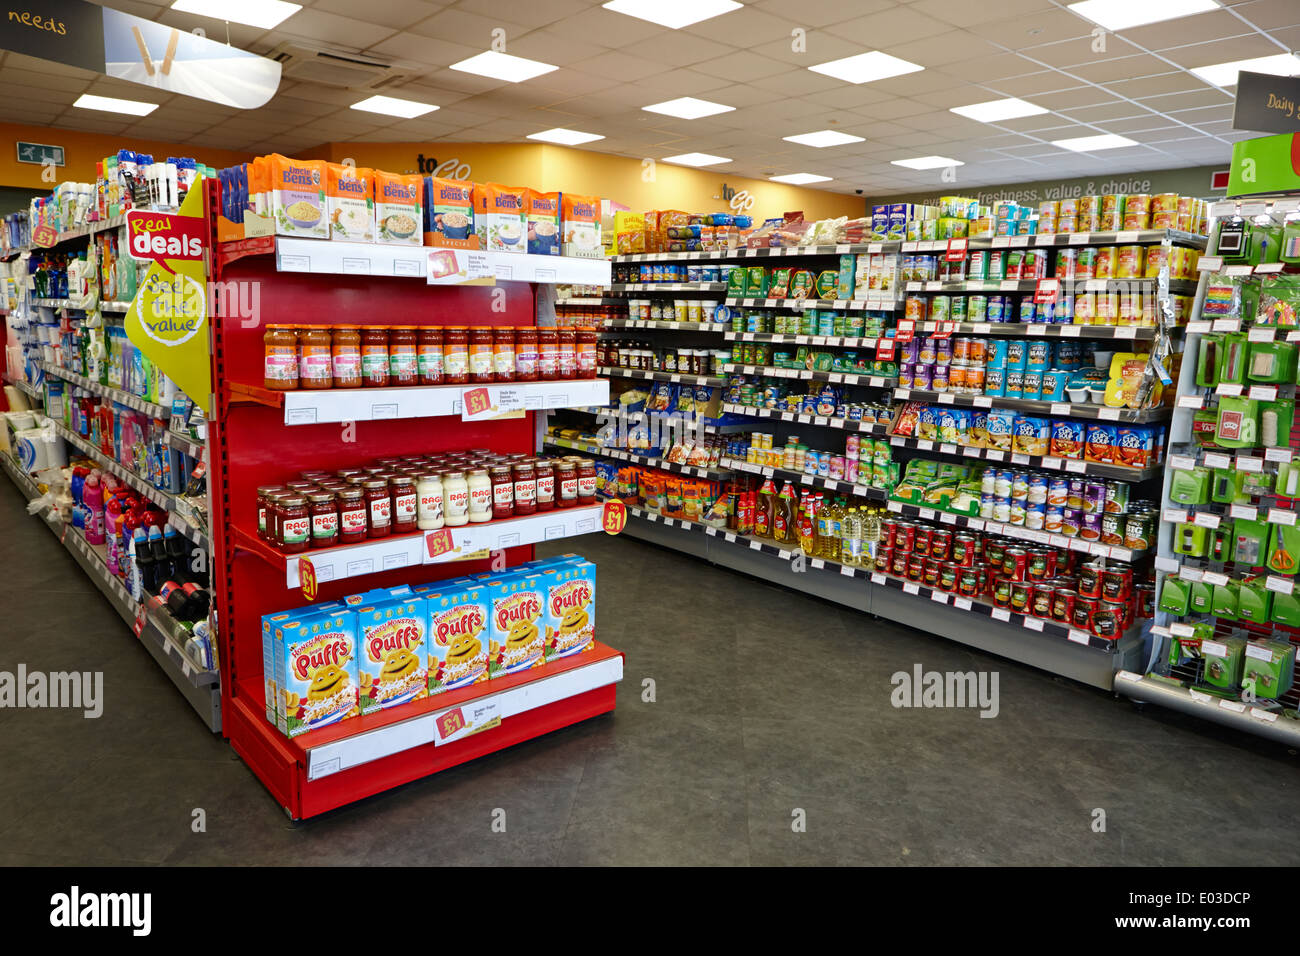 Food And Grocery Aisles In A Filling Station Convenience Store In Stock Photo Alamy